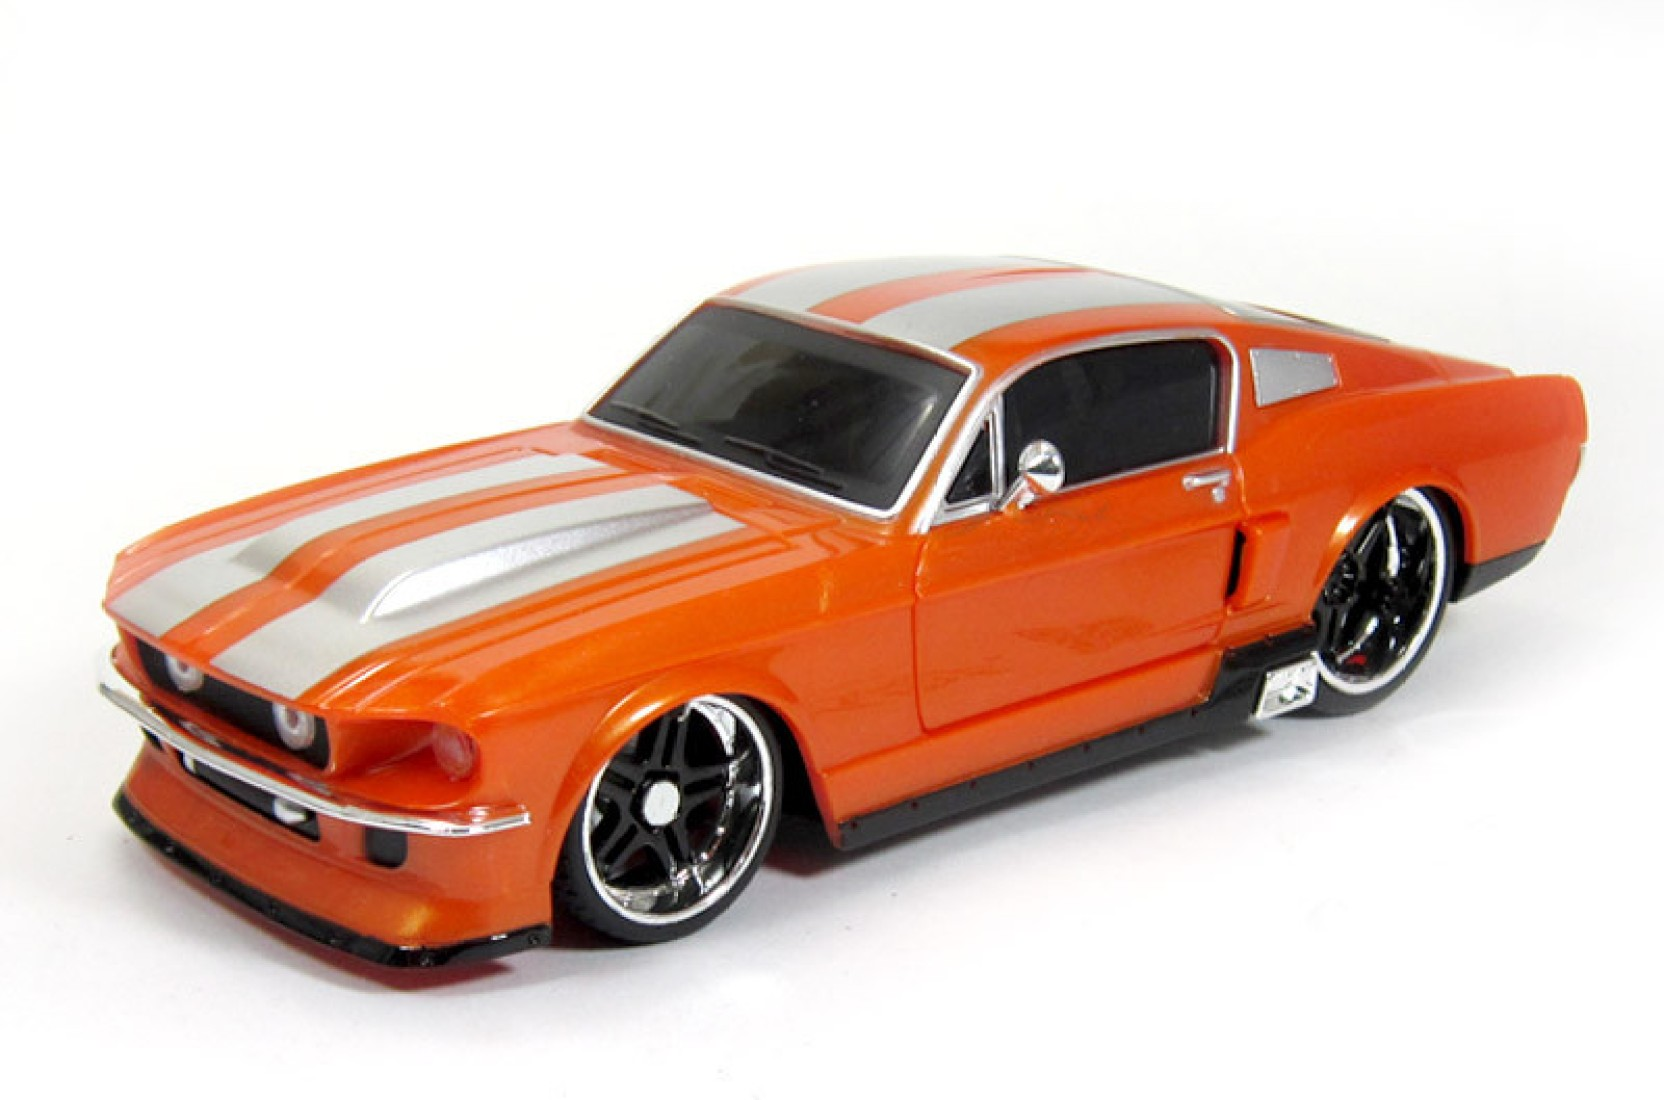 maisto 1967 ford mustang gt rc 1 24 by car scale model. Black Bedroom Furniture Sets. Home Design Ideas